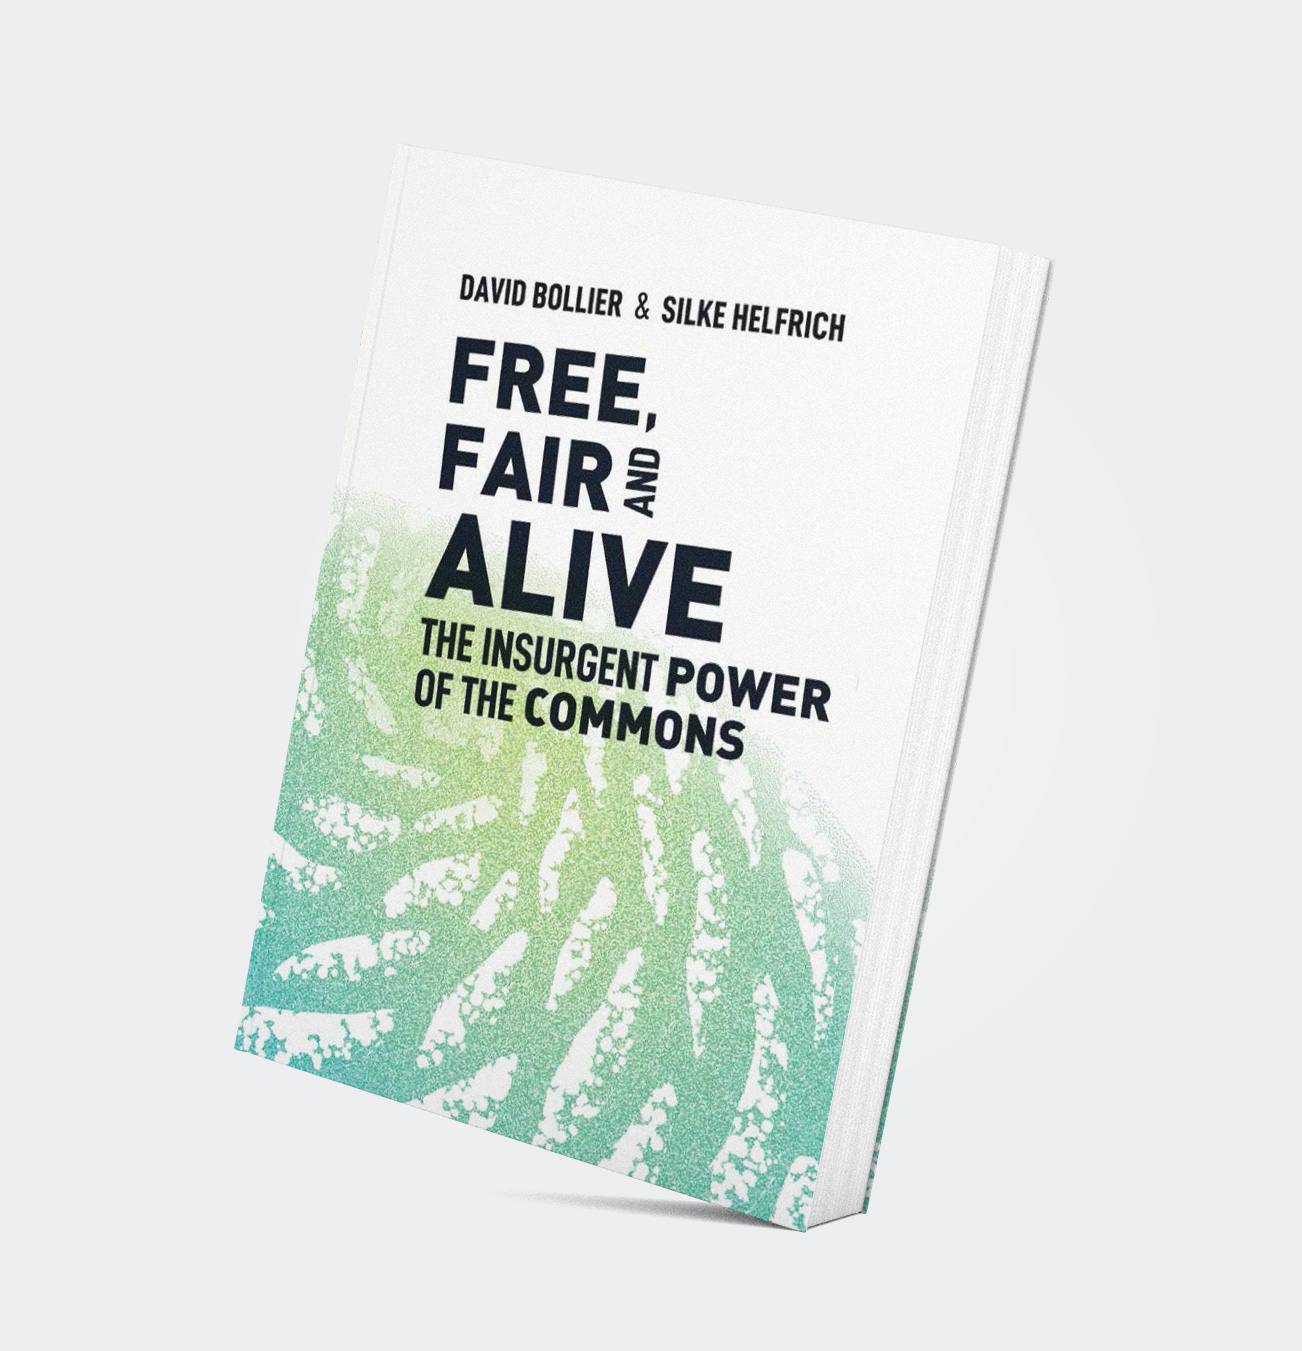 ?Free, Fair & Alive' book